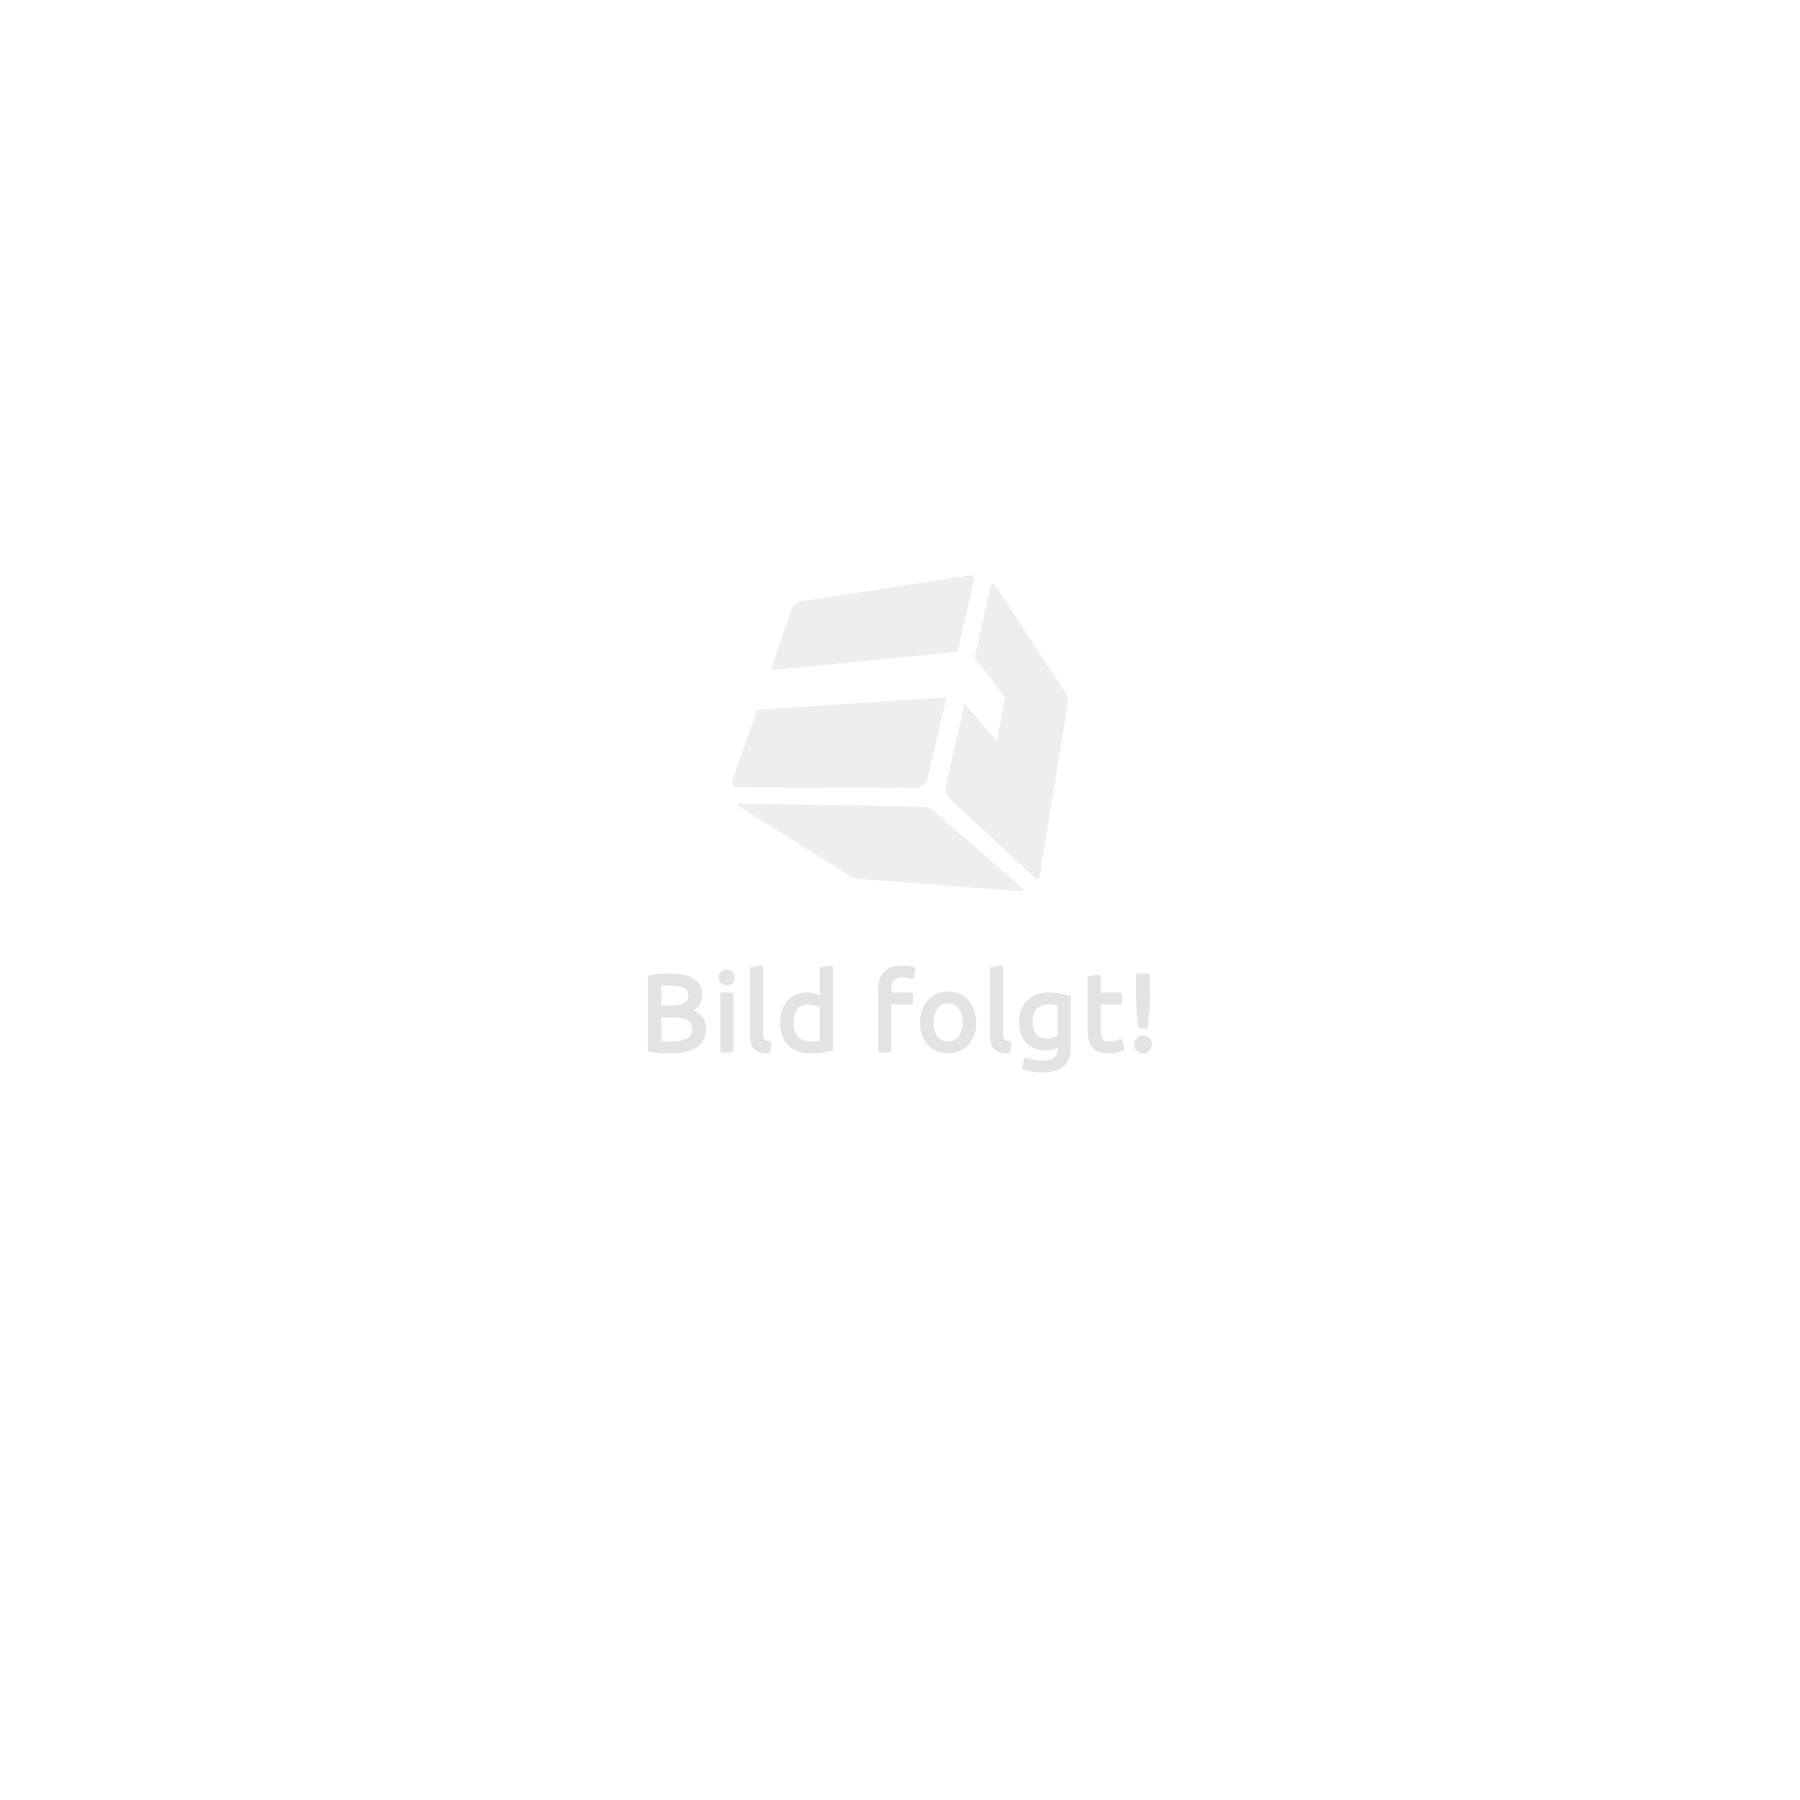 Bathroom stool with storage space black/white